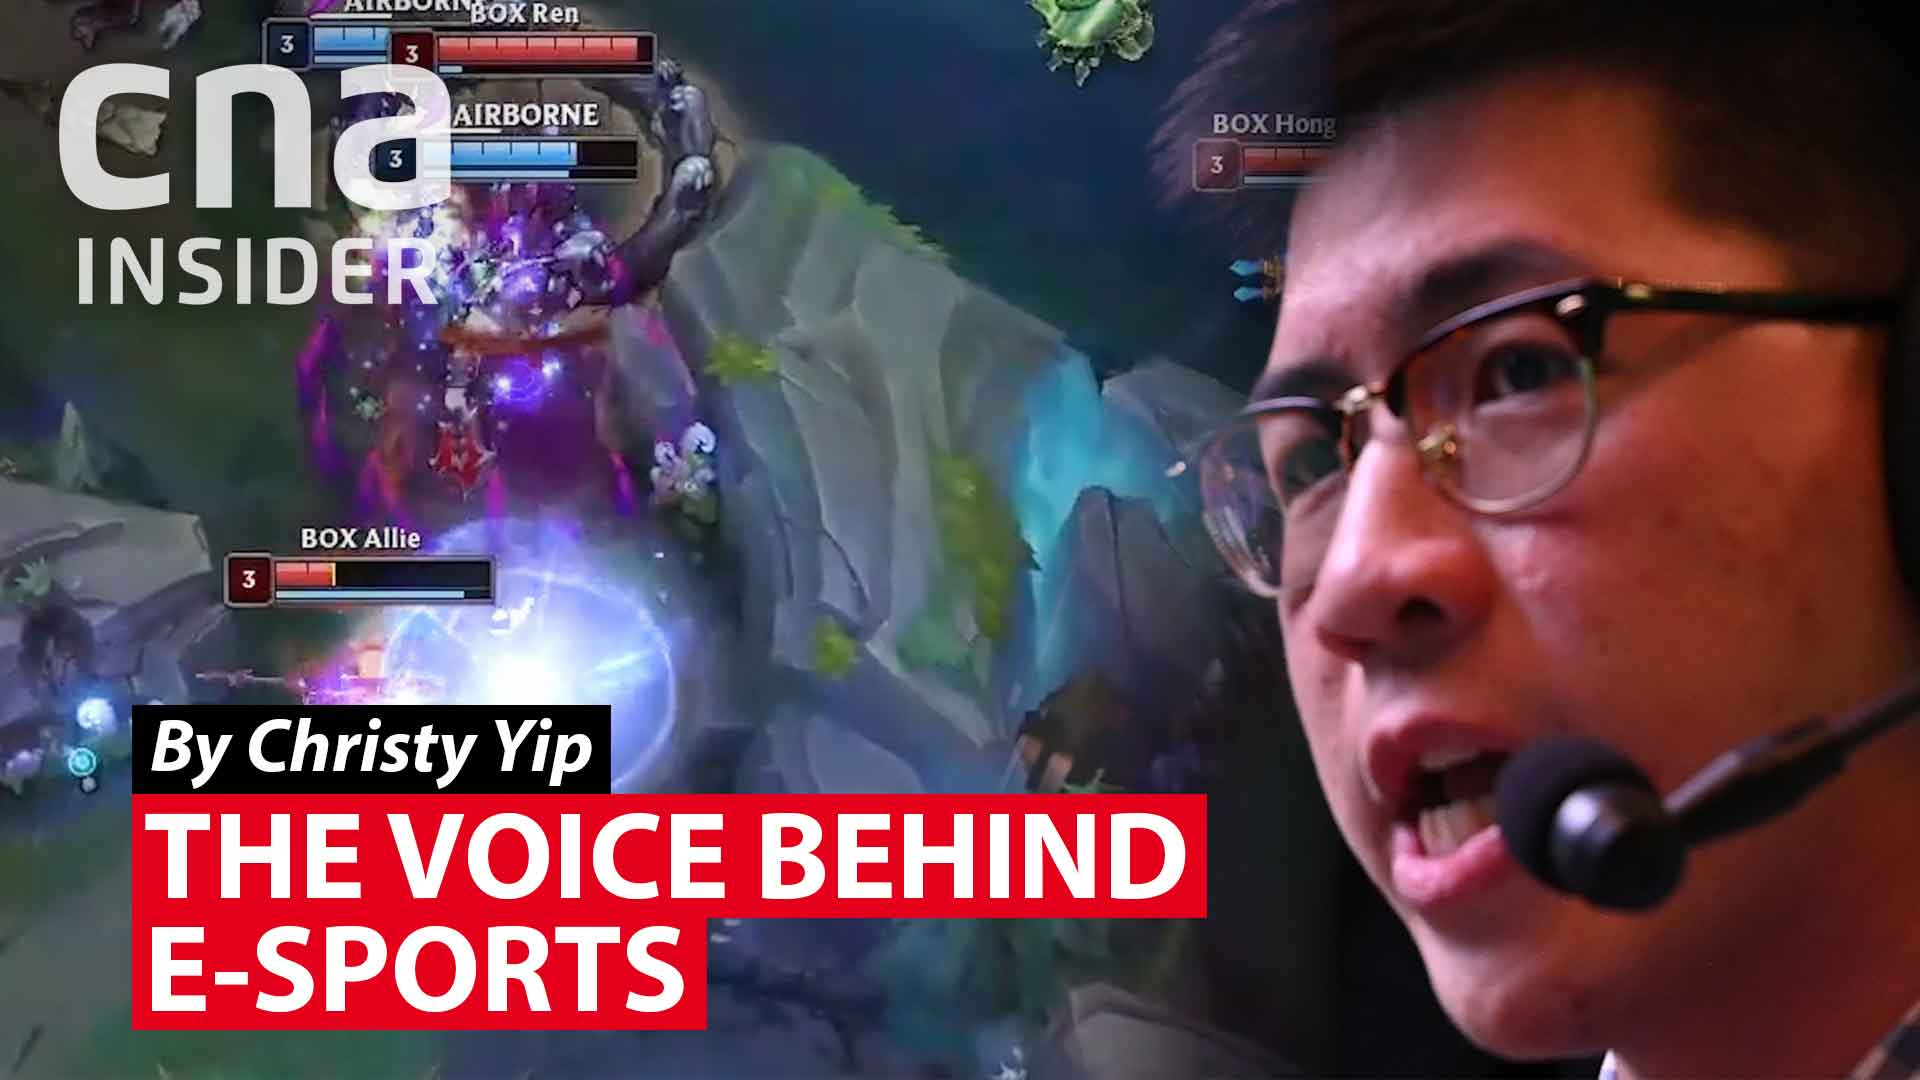 The voice behind e-sports